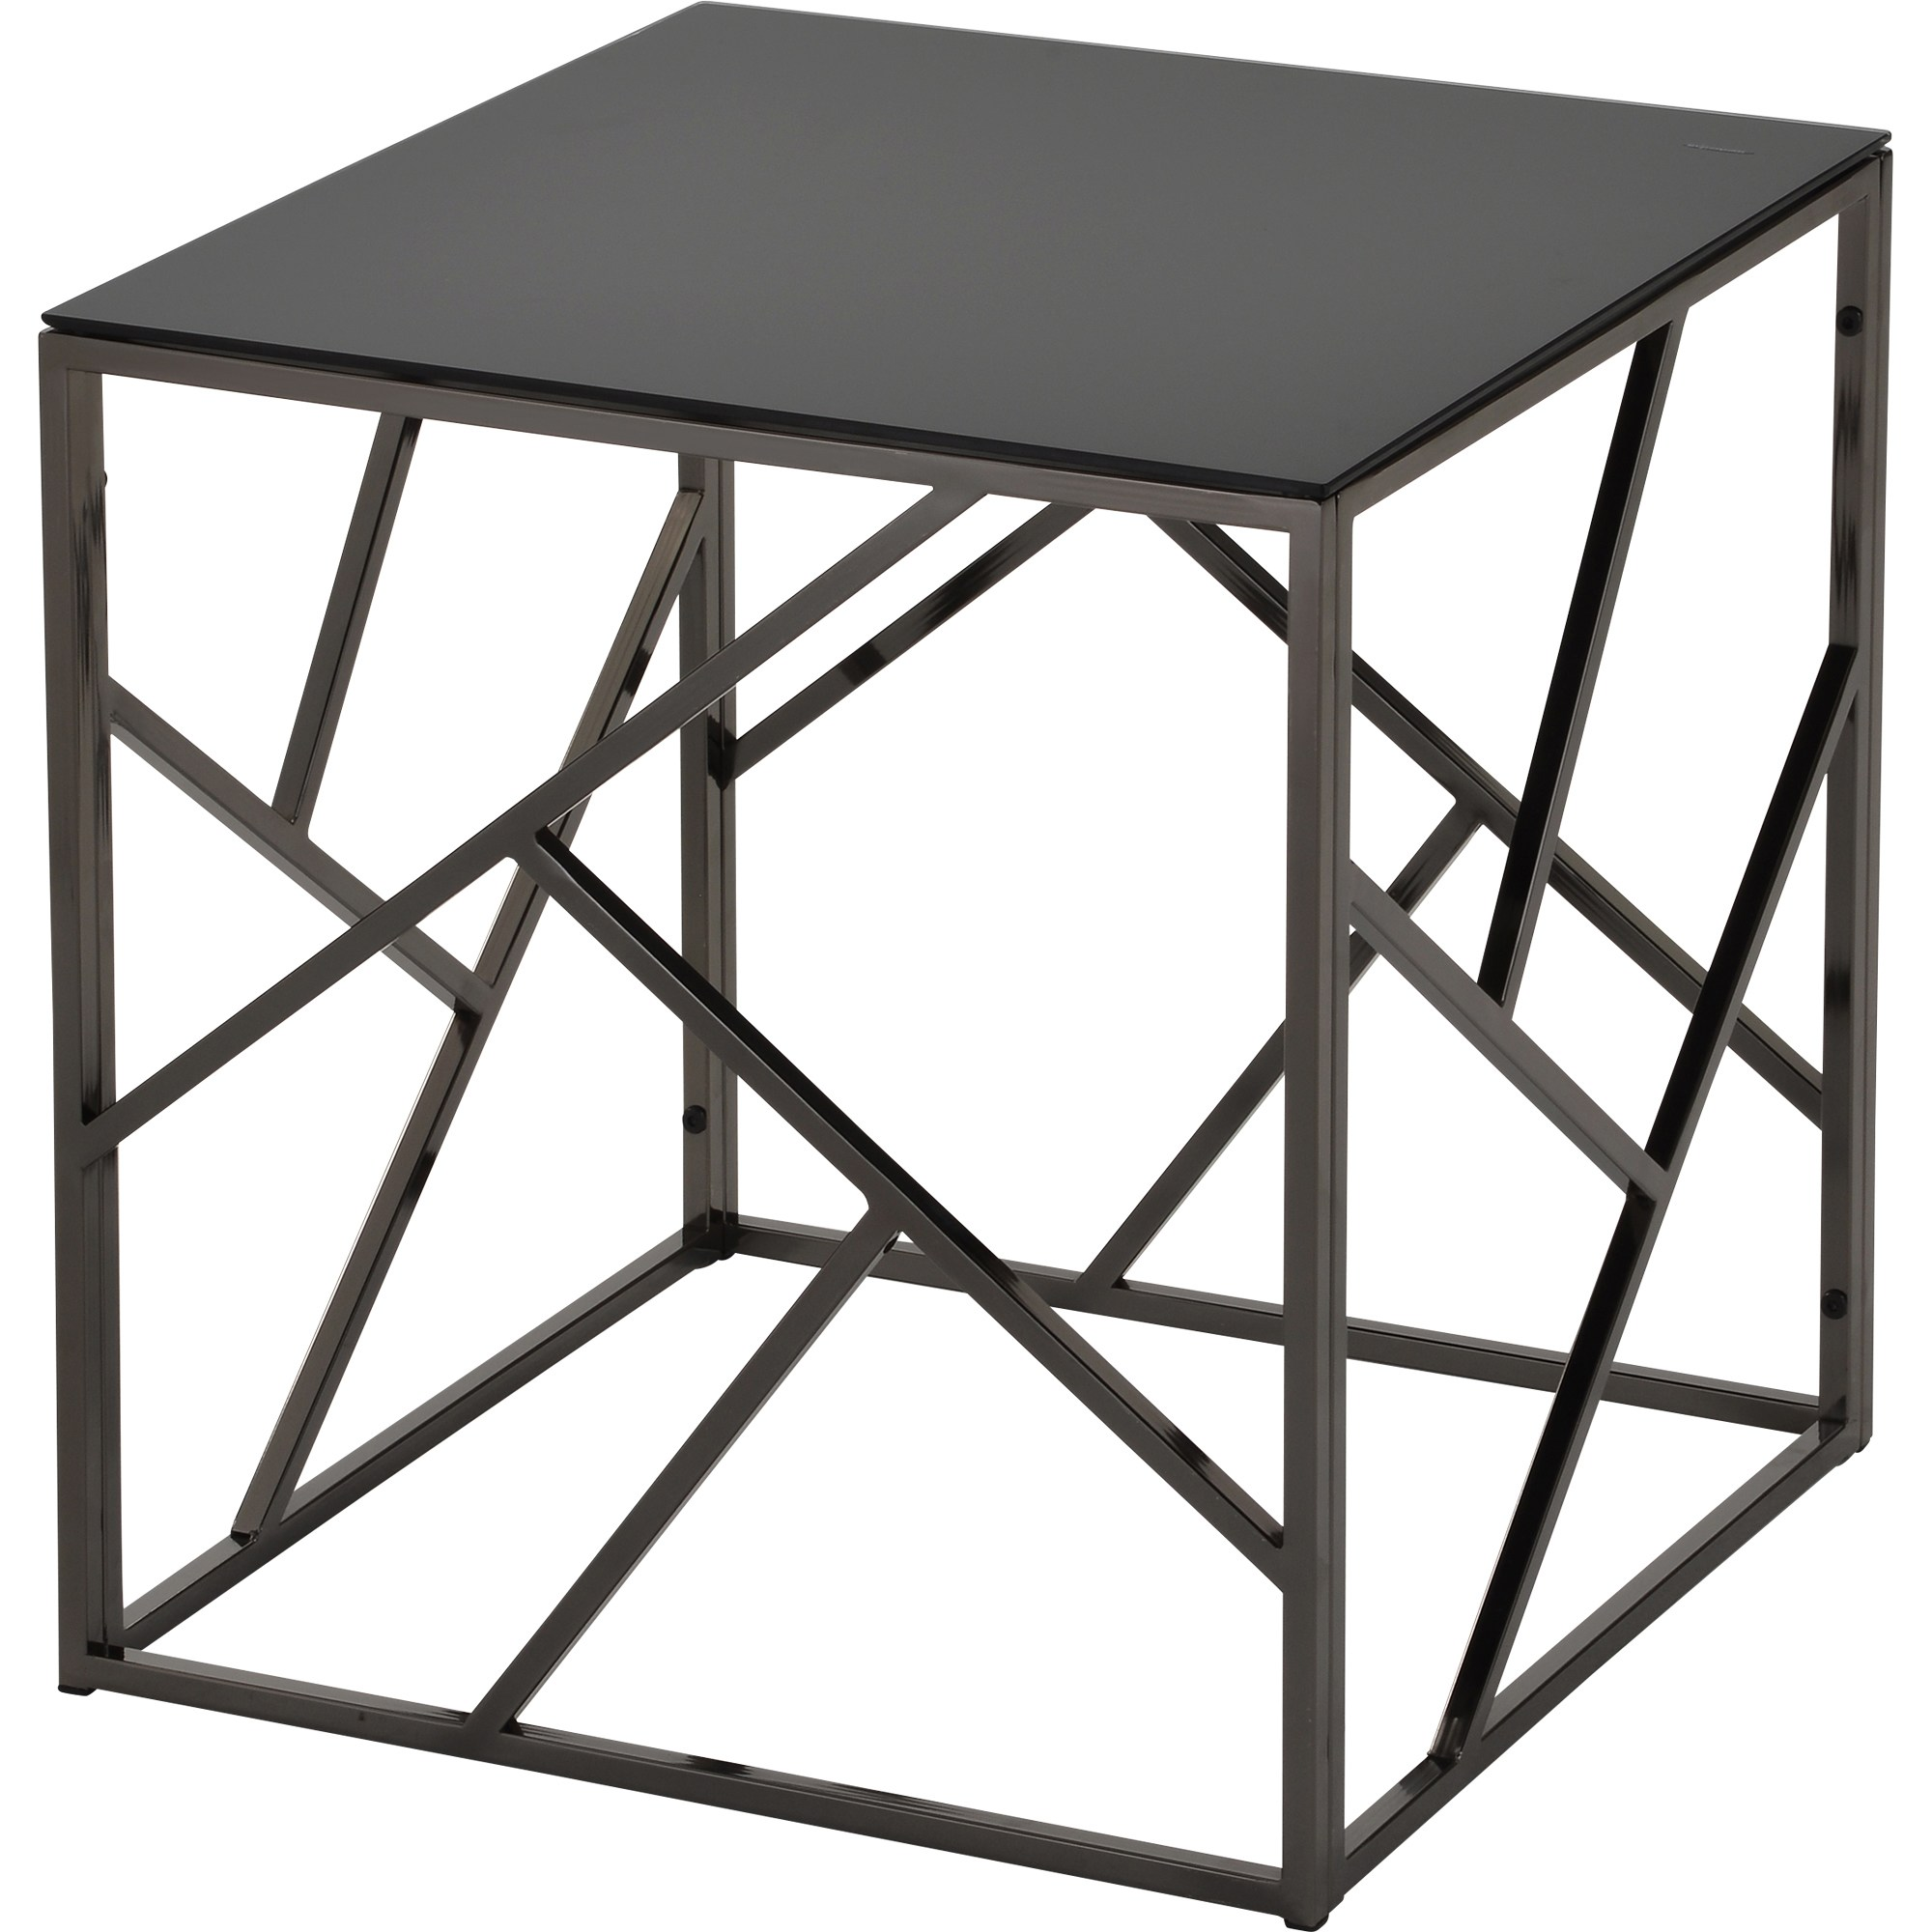 giada black glass and metal accent table free shipping today eyelet round wood end tables backyard furniture extra long antique gold trestle dining room unique small side nautical